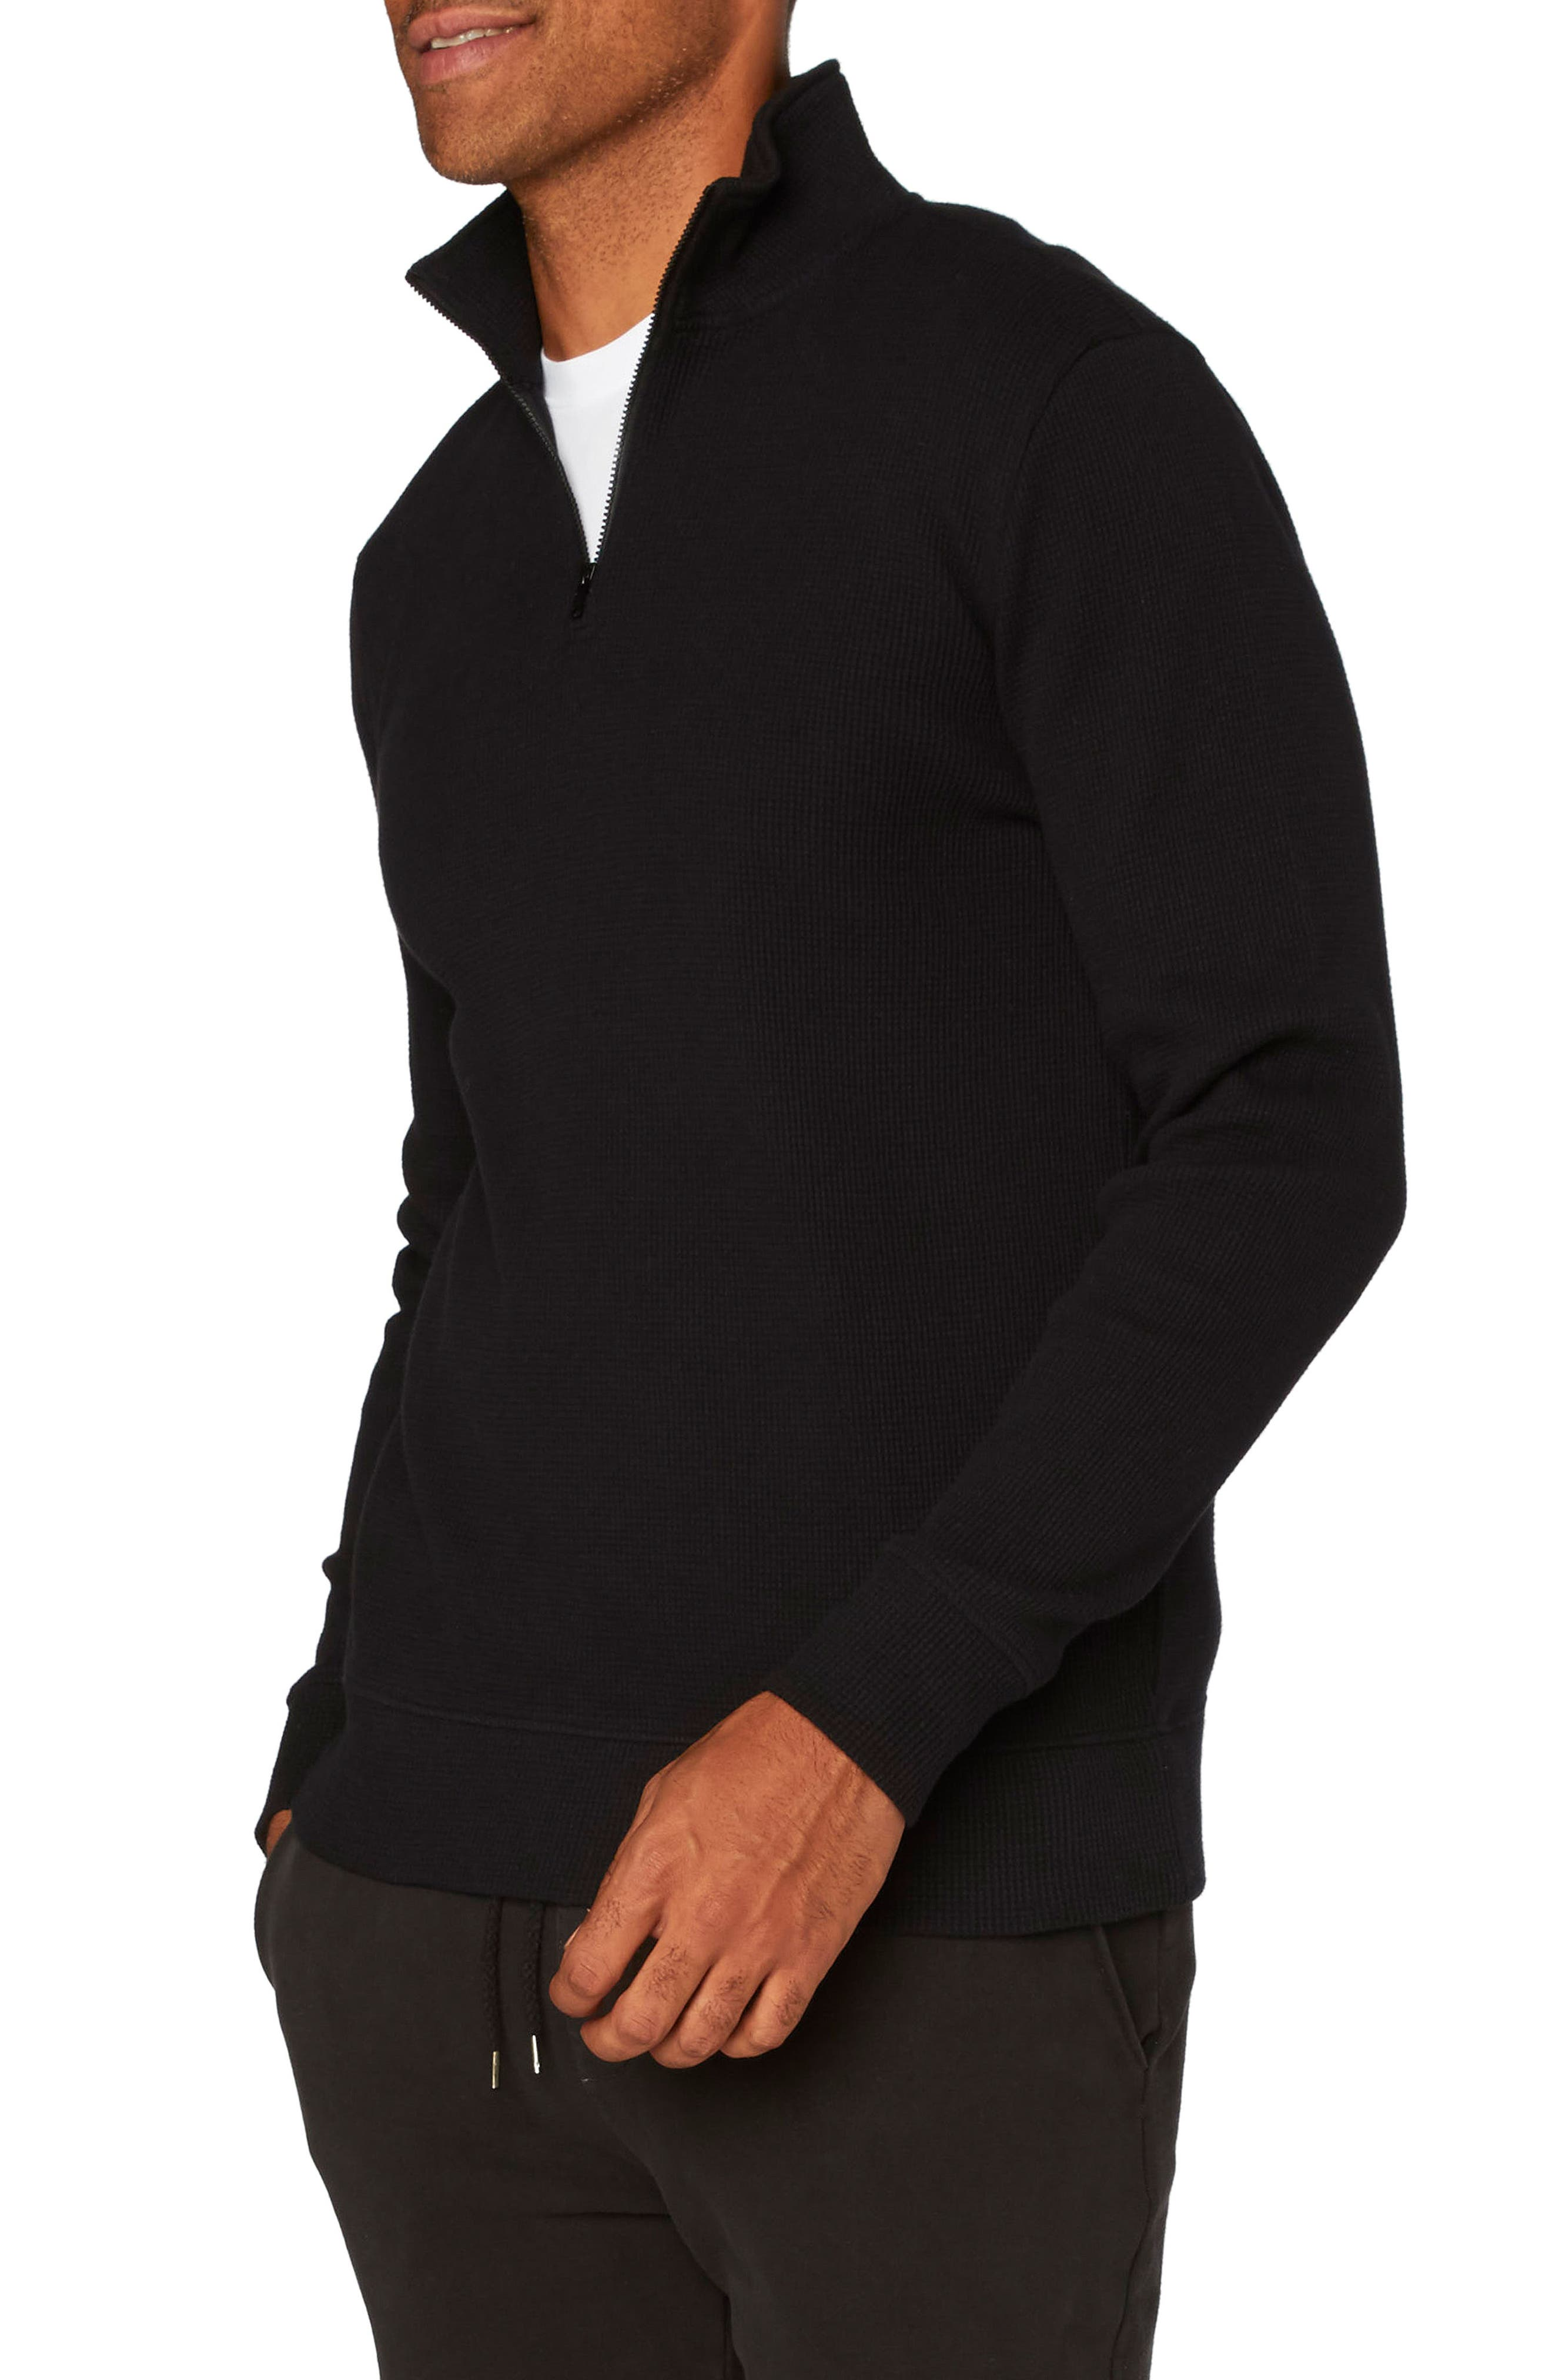 Chad Half Zip Thermal Pullover,                             Alternate thumbnail 3, color,                             001